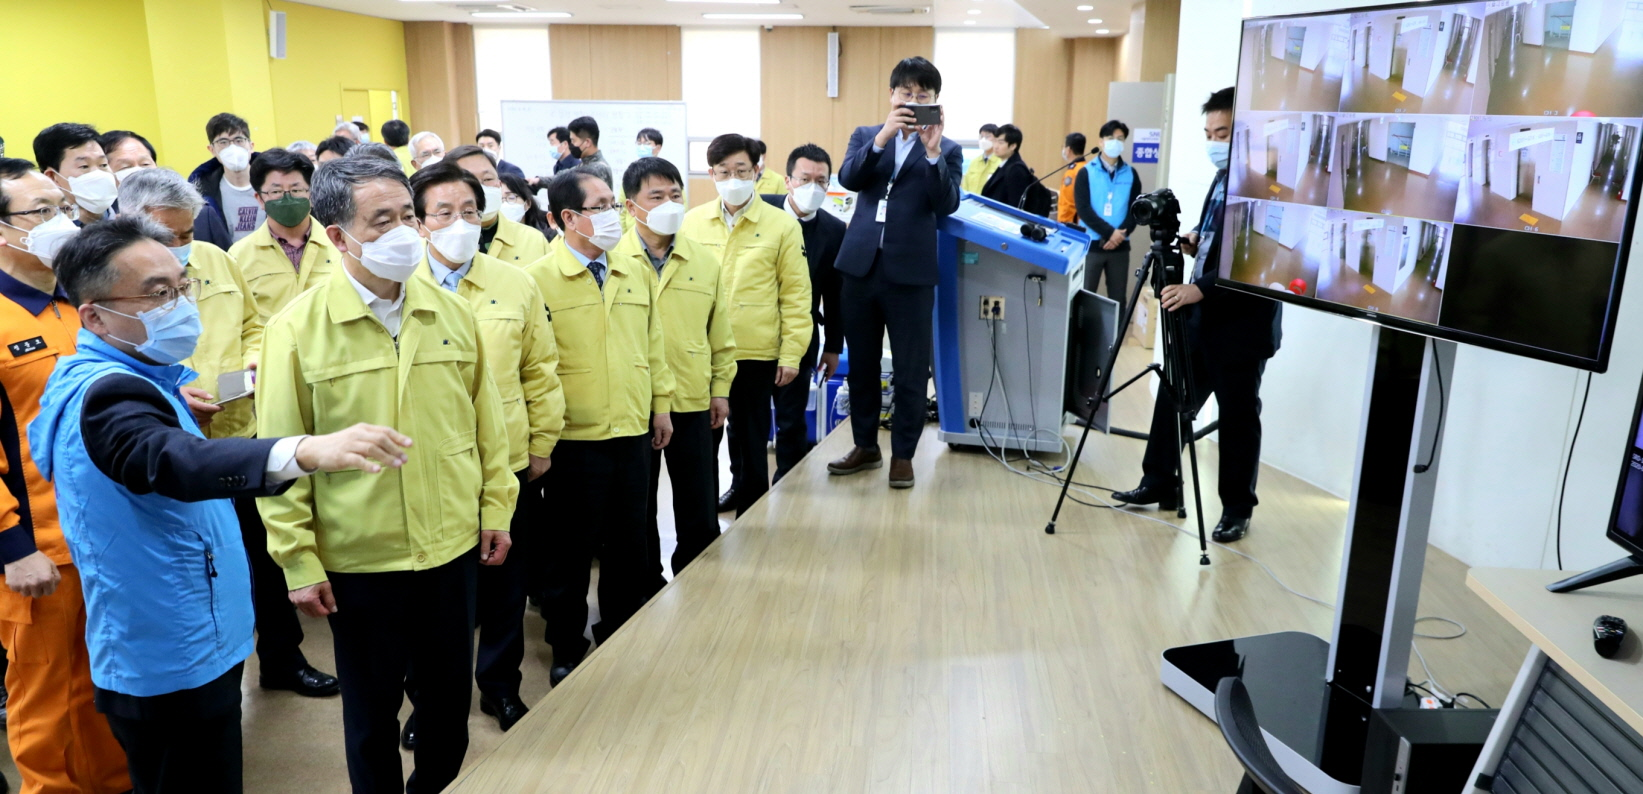 Park Neung-hoo, Vice Head 1 of the Central Disaster and Safety Countermeasures Headquarters, Attends the Opening Ceremony of the Gyeongbuk Daegu 3 Community Treatment Center (Mun-gyeong Seoul National University Hospital Training Center)7